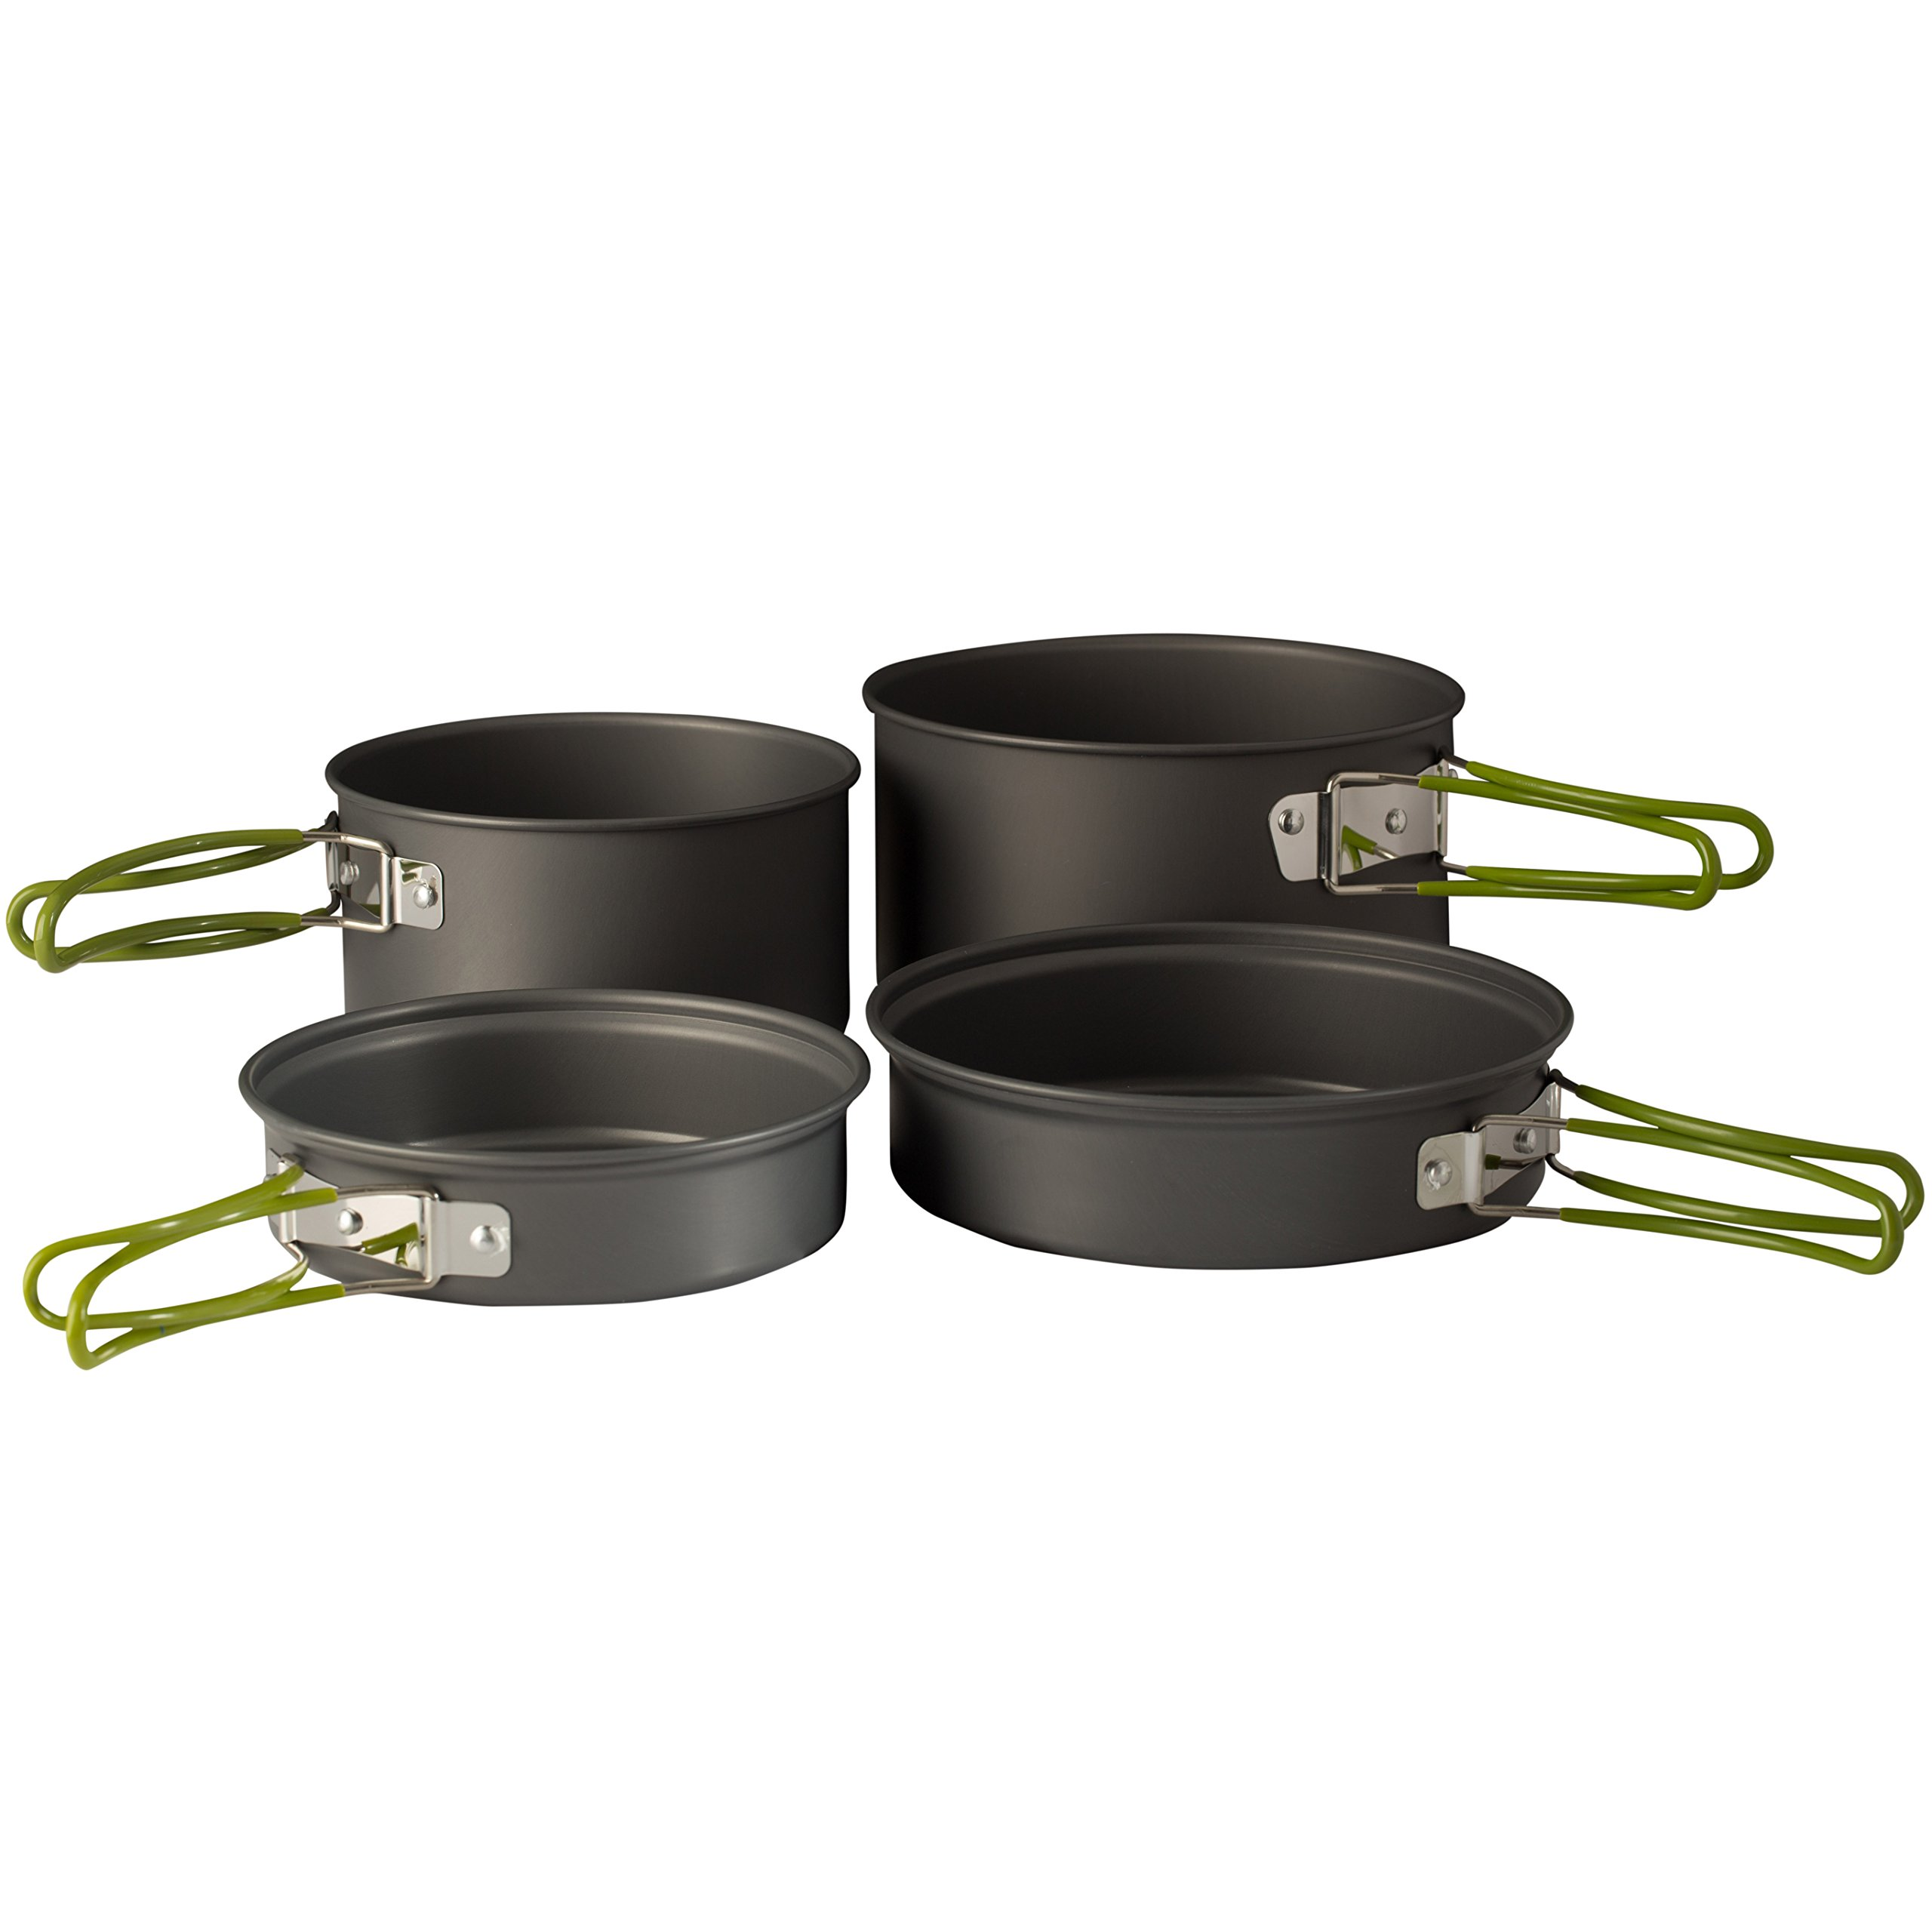 Wealers-Camping-Cookware-11-Piece-Outdoor-Mess-Kit-Backpacking-Trailblazing-add miniatuur 3